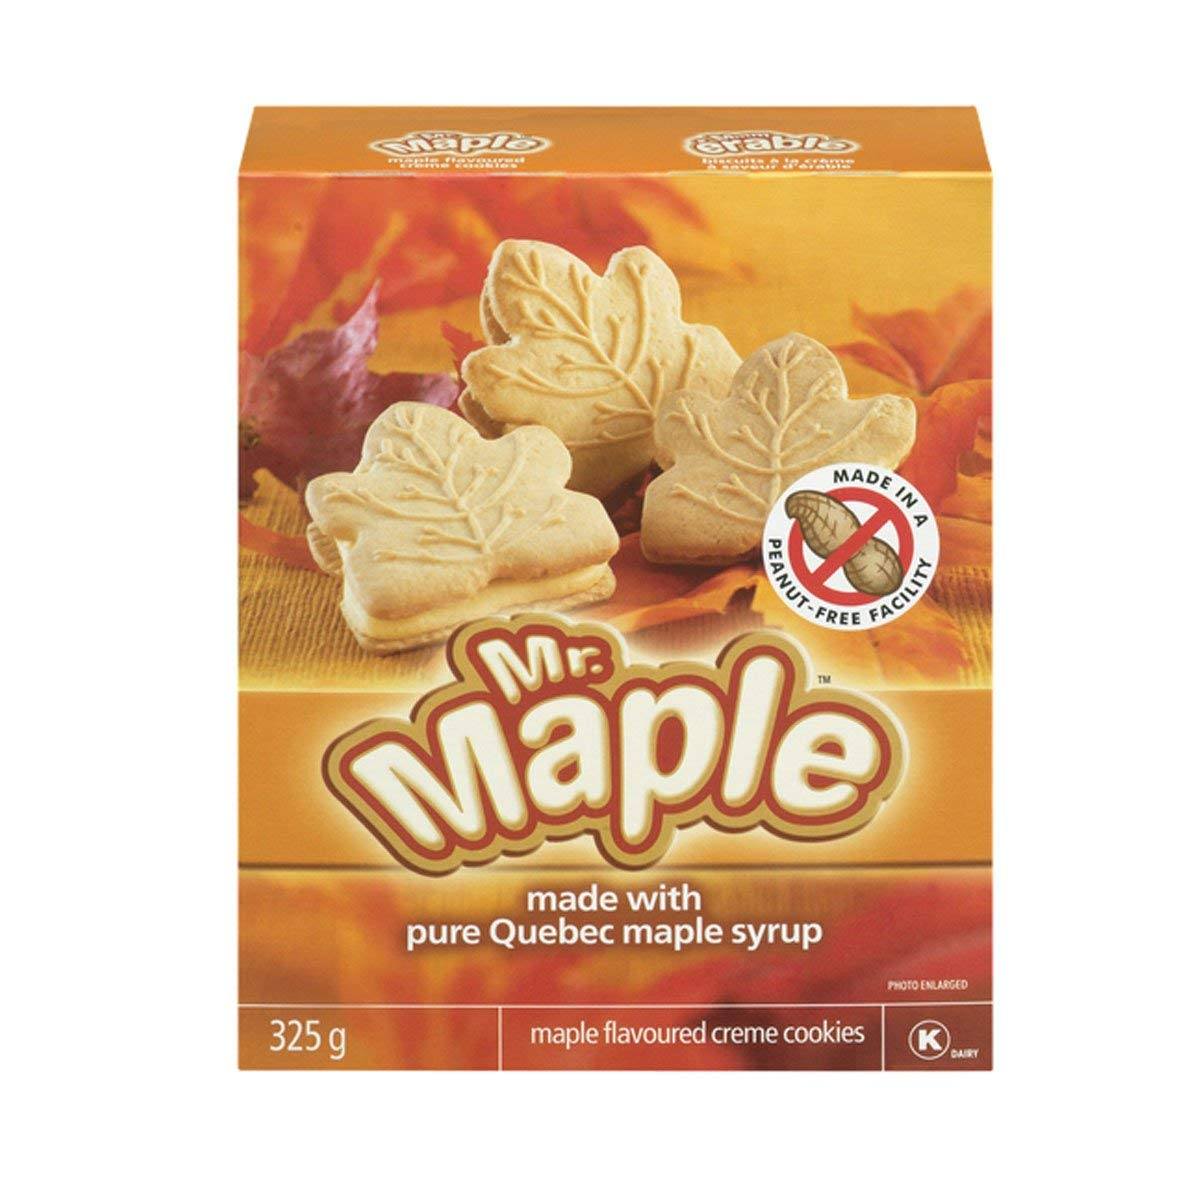 Mr. Maple Maple Flavoured Creme Cookies 325g - {Imported from Canada}